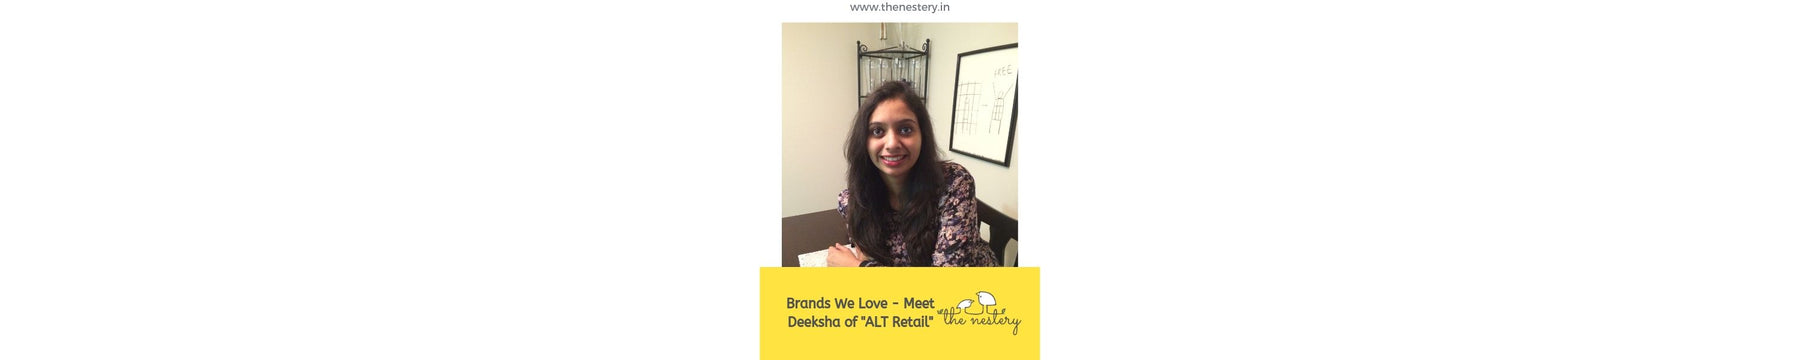 Brands We Love - Meet Deeksha of ALT Retail